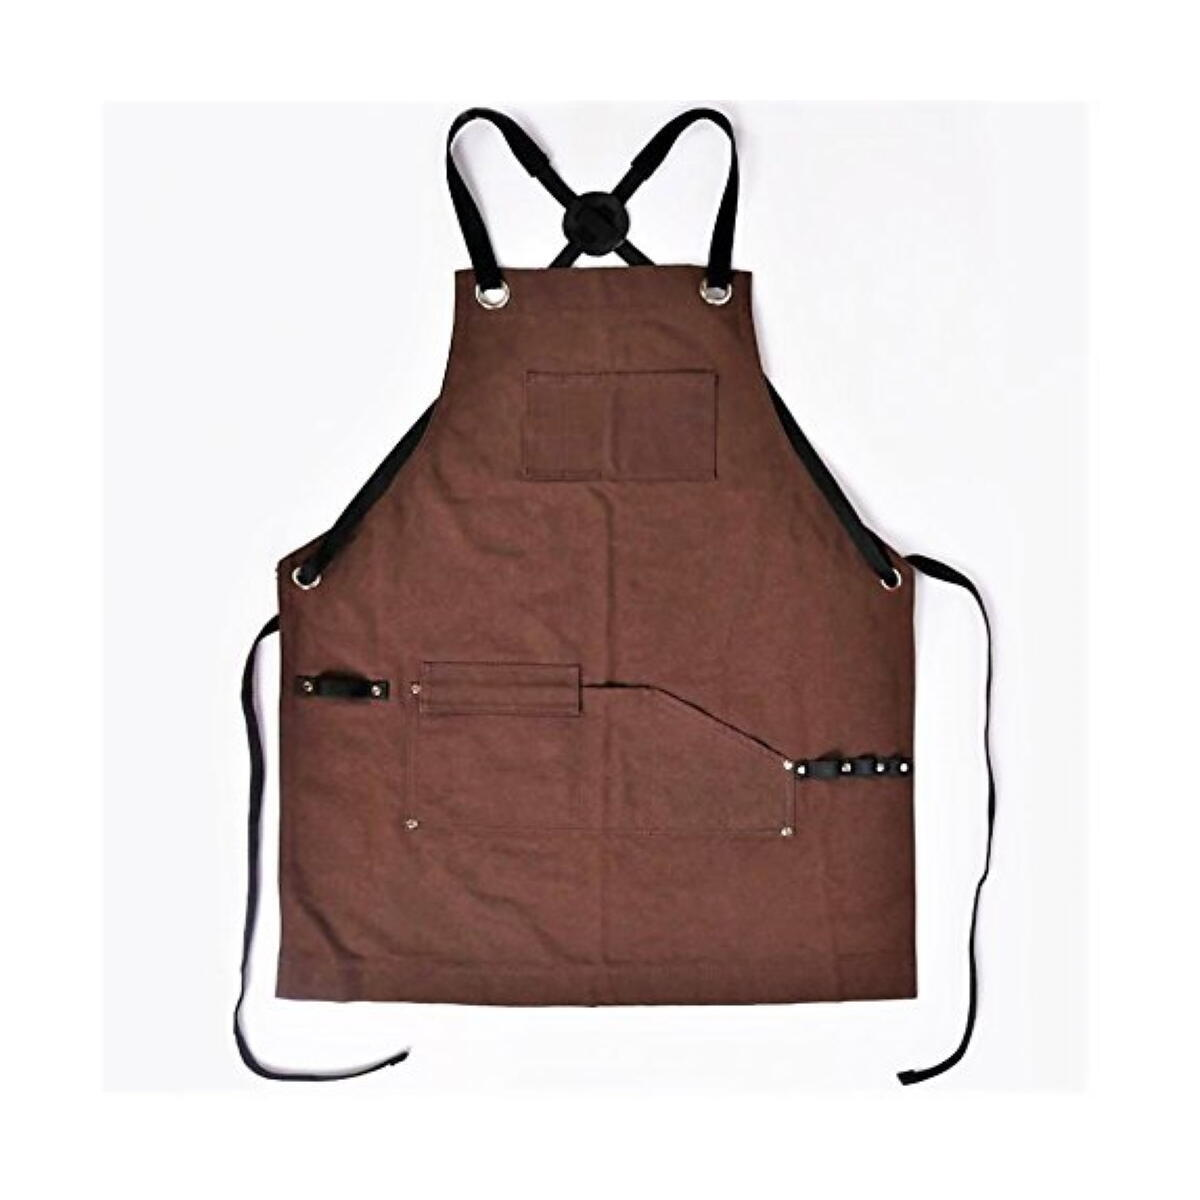 Heavy-Duty Work Apron - 16oz Waxed Canvas - Good for all your DIY, Grilling, Oil Changes, Yardwork, etc. One Size Fits All - Adjustable S-XXL